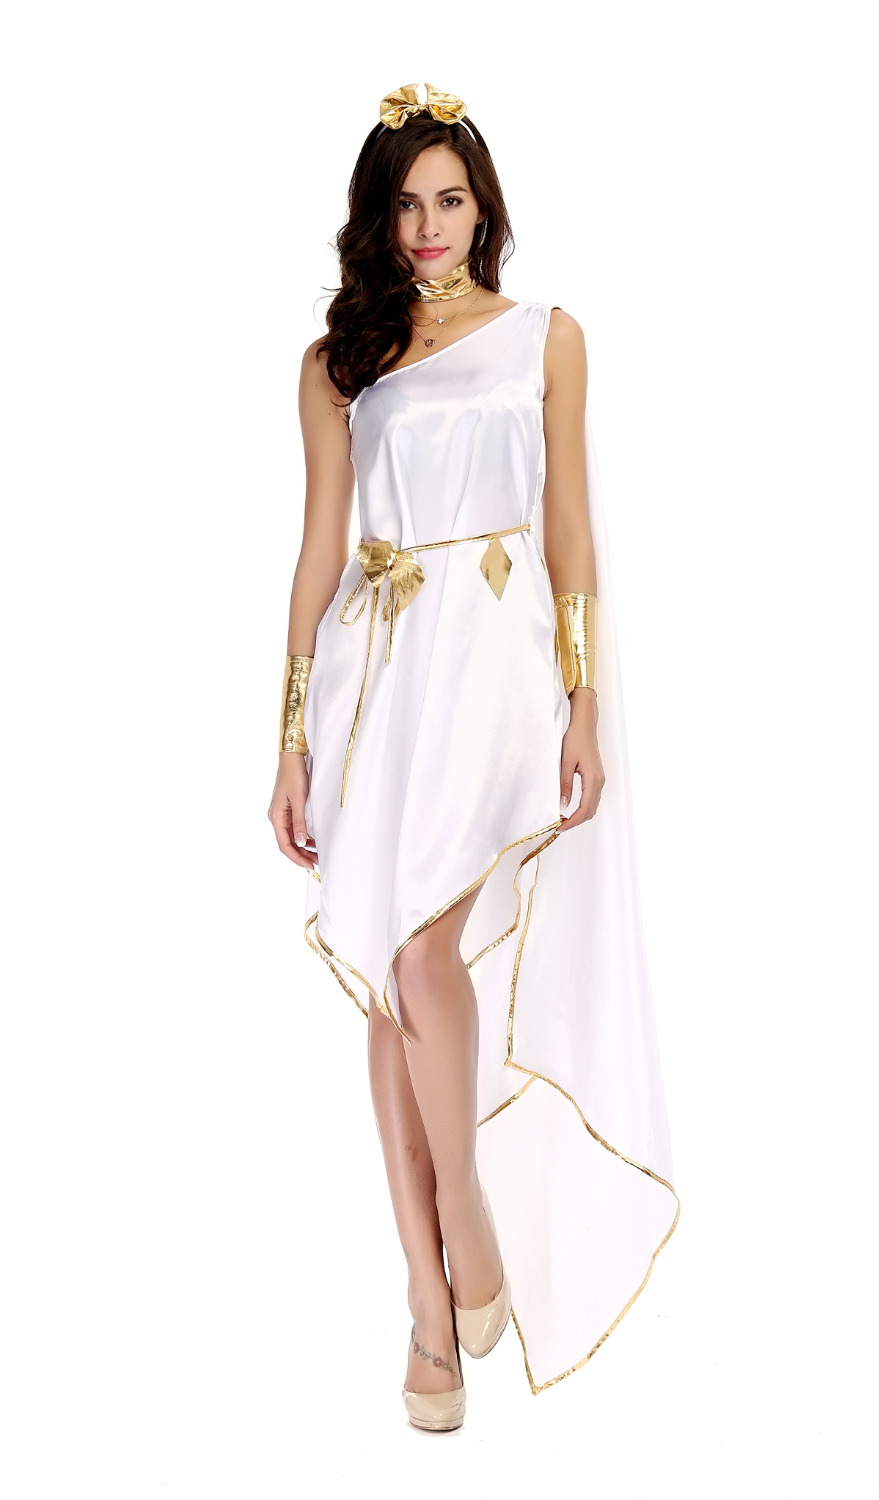 Greek Goddess Halloween White Goddess Exquisite Irregular Dress Uniform Temptation Women Sexy costume Full Sets